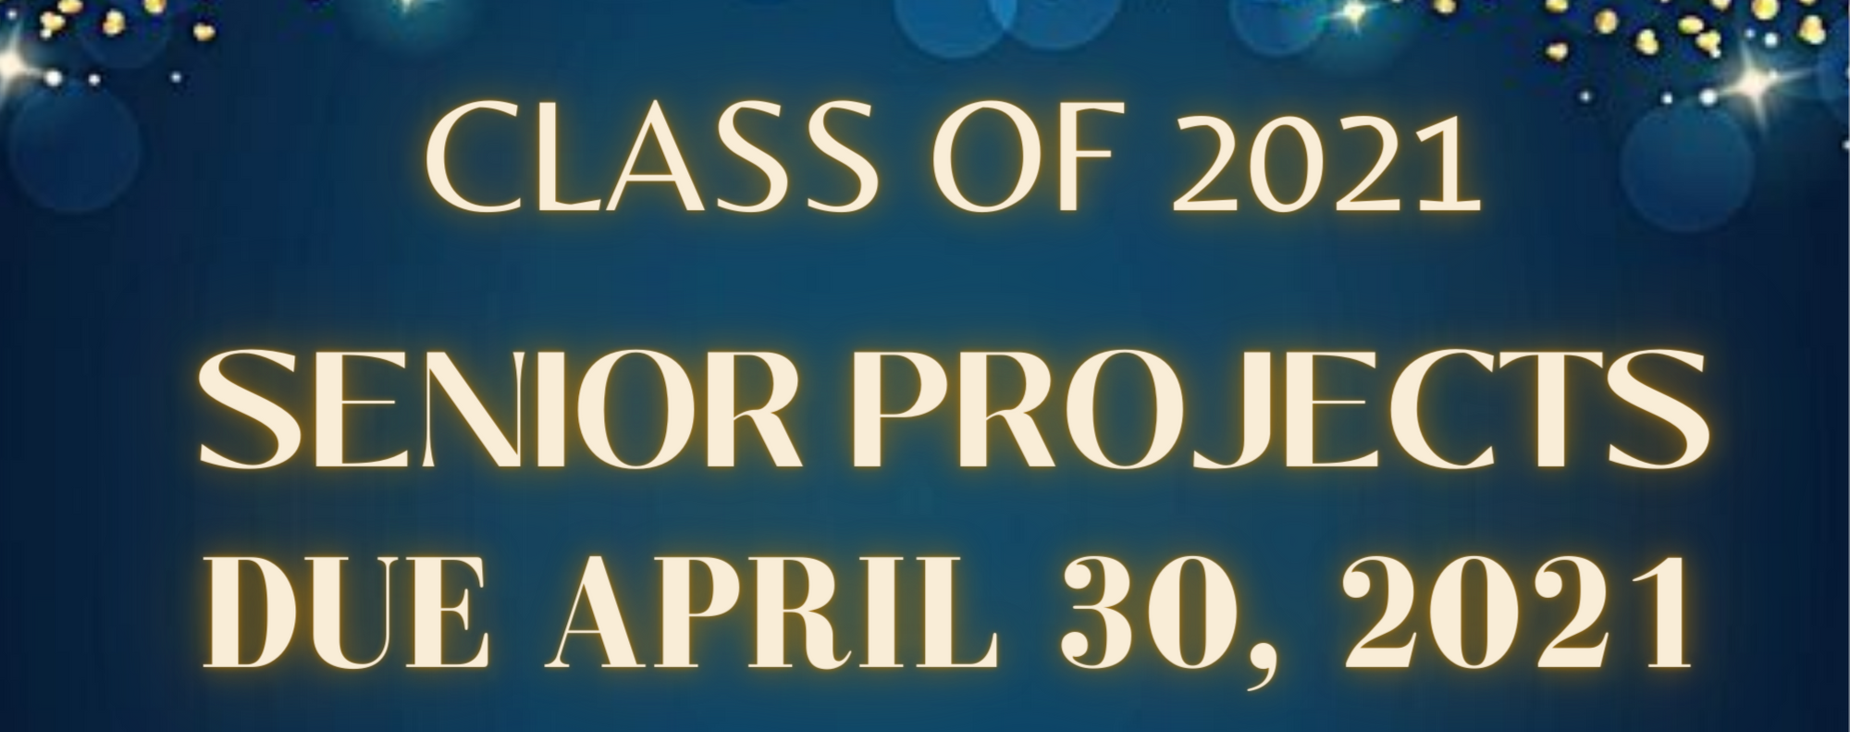 Class of 2021 Senior Projects